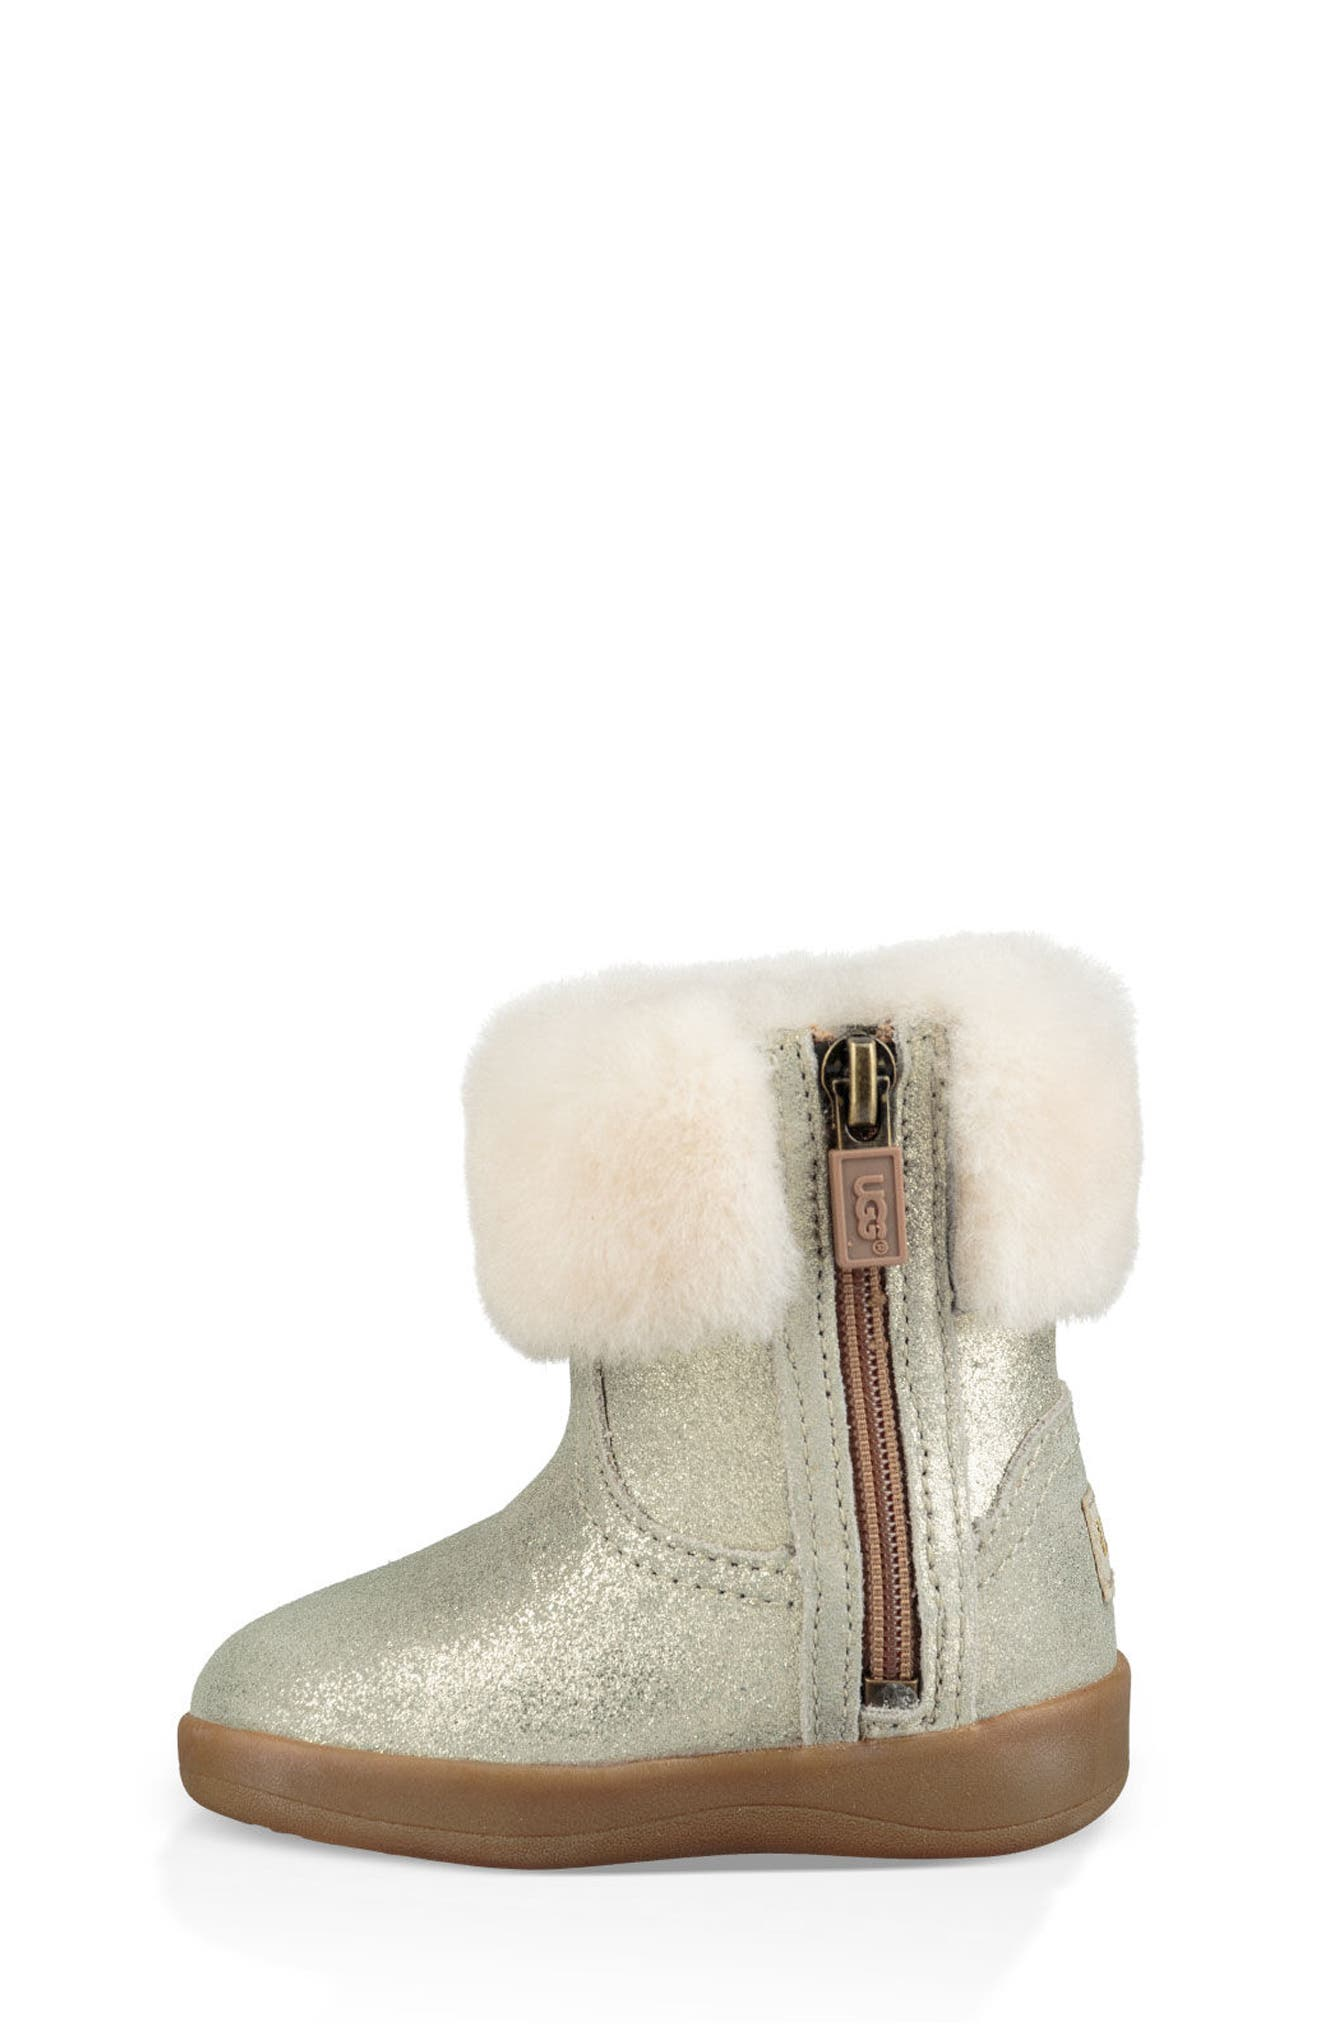 UGG<SUP>®</SUP>, Jorie II Metallic Genuine Shearling Boot, Alternate thumbnail 6, color, GOLD